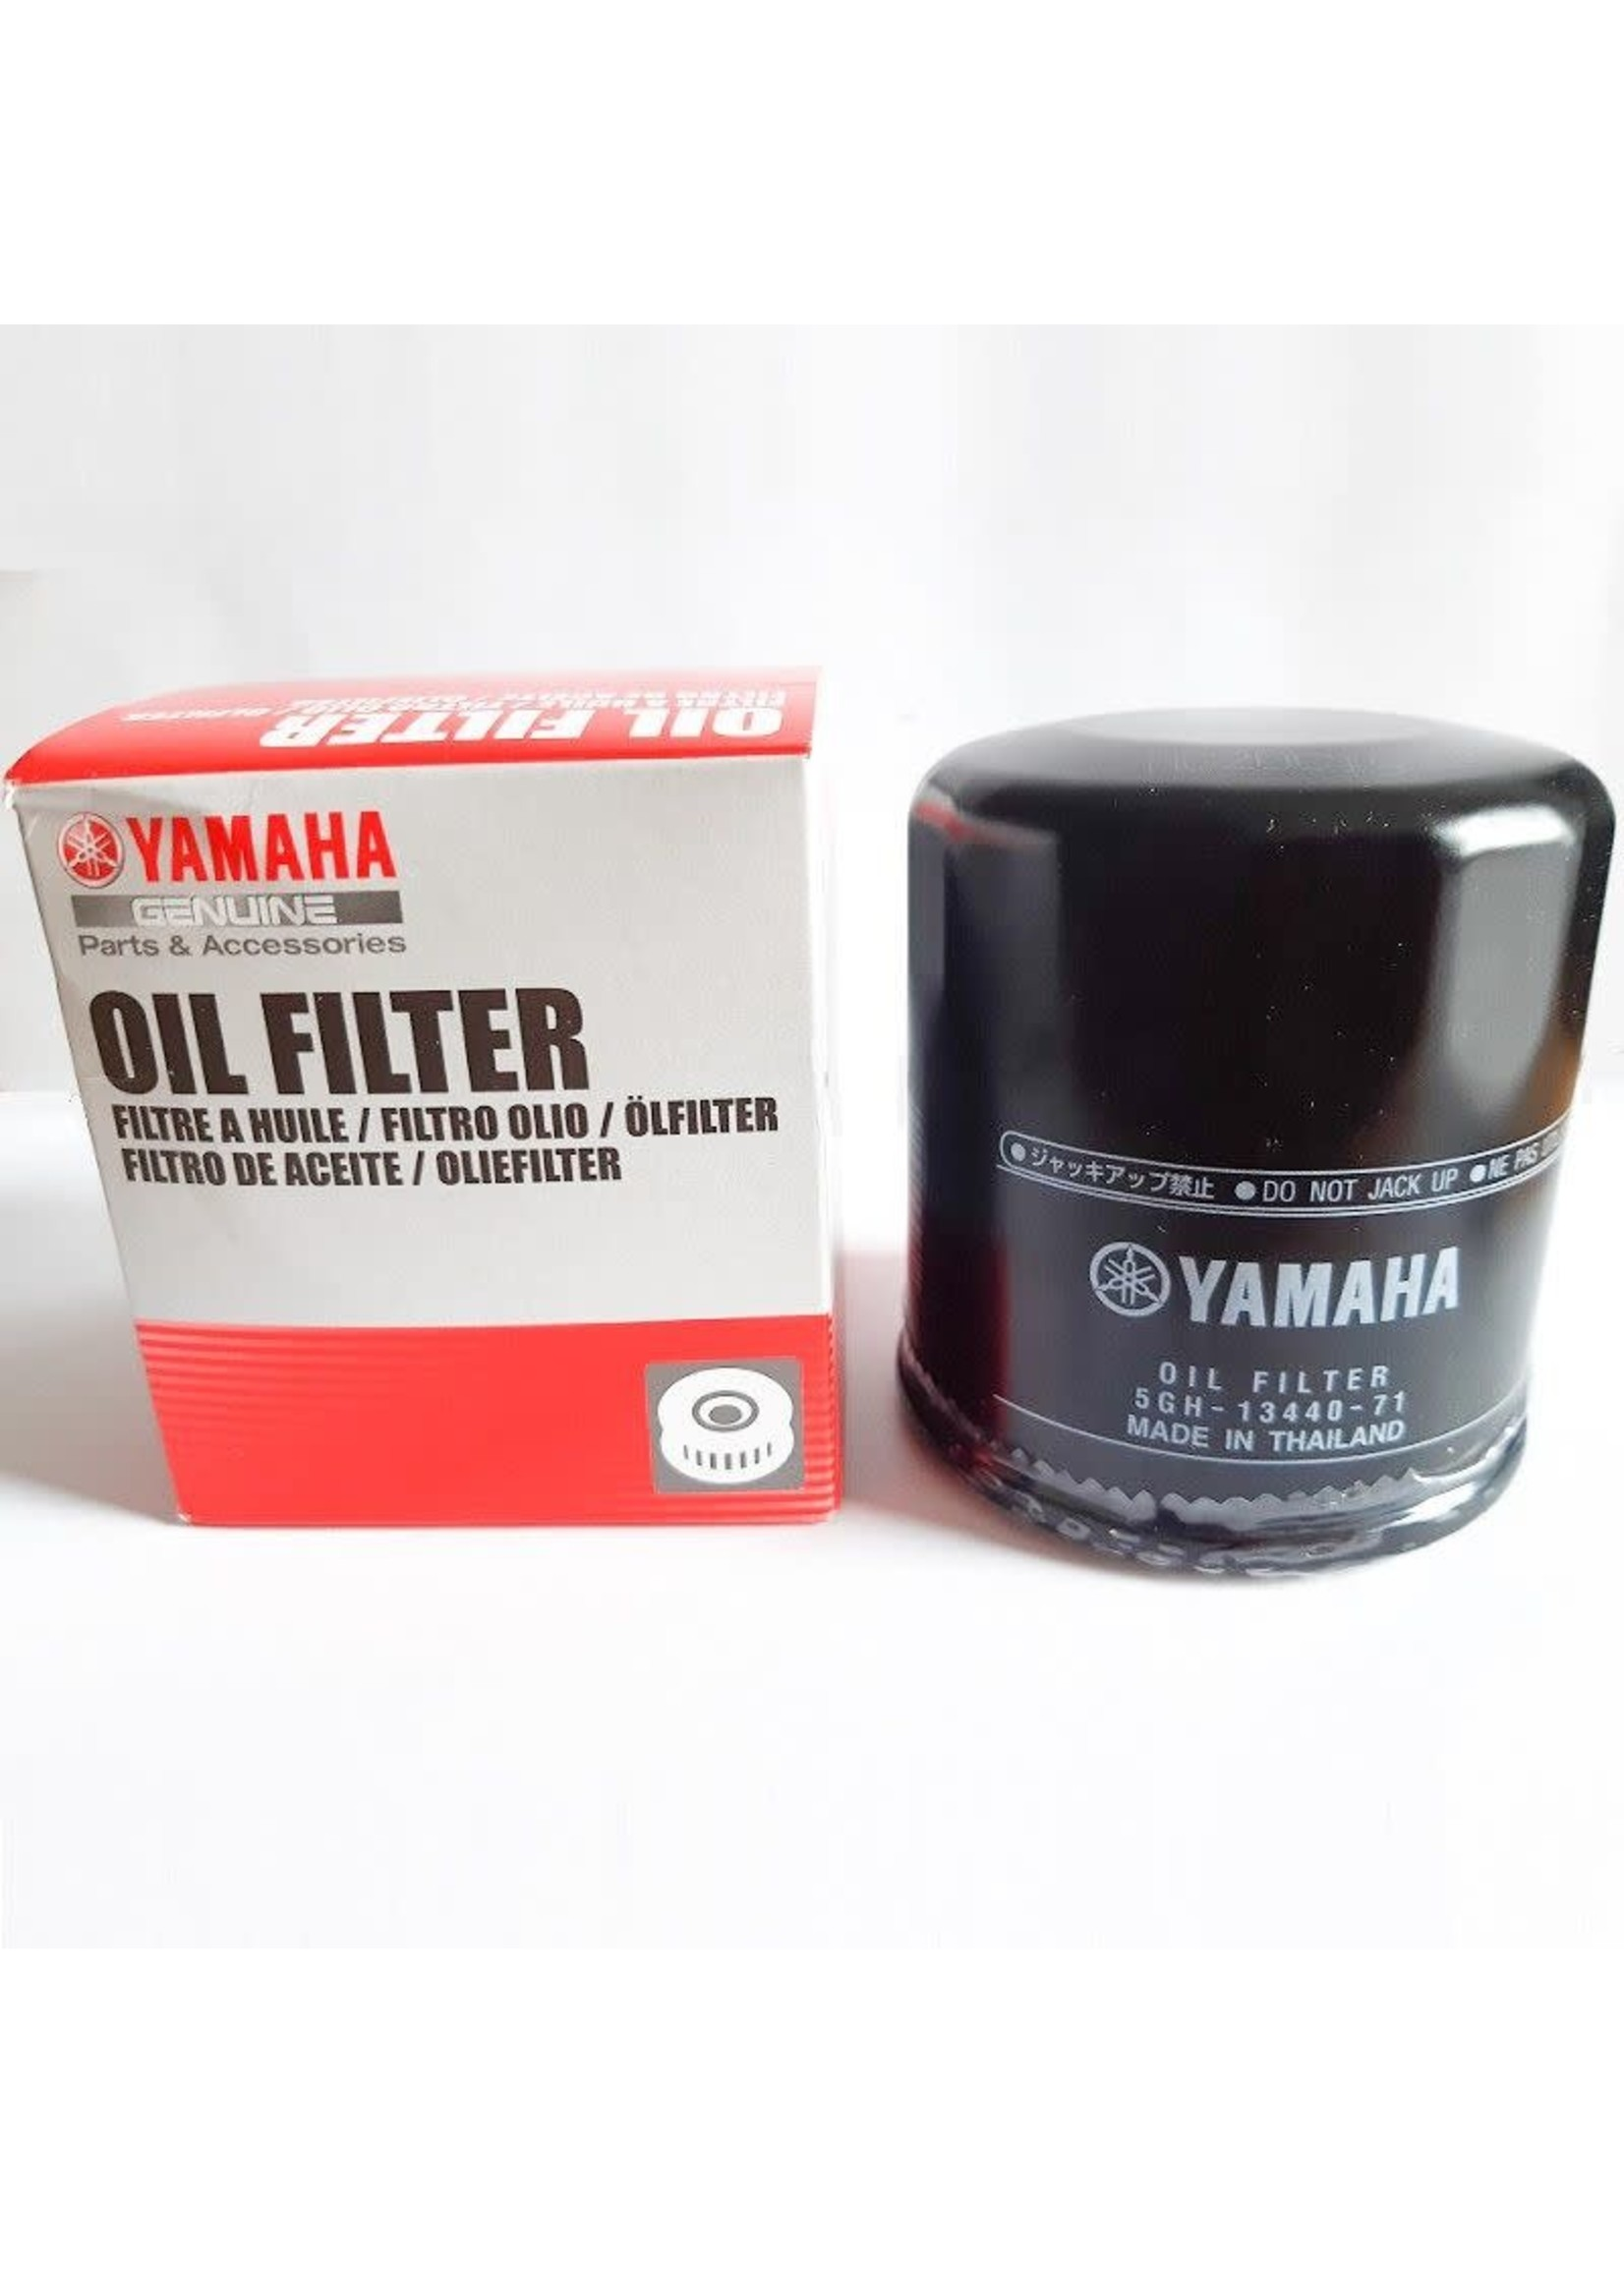 Yamaha OIL FILTER, YAMAHA, 5GH-13440-71